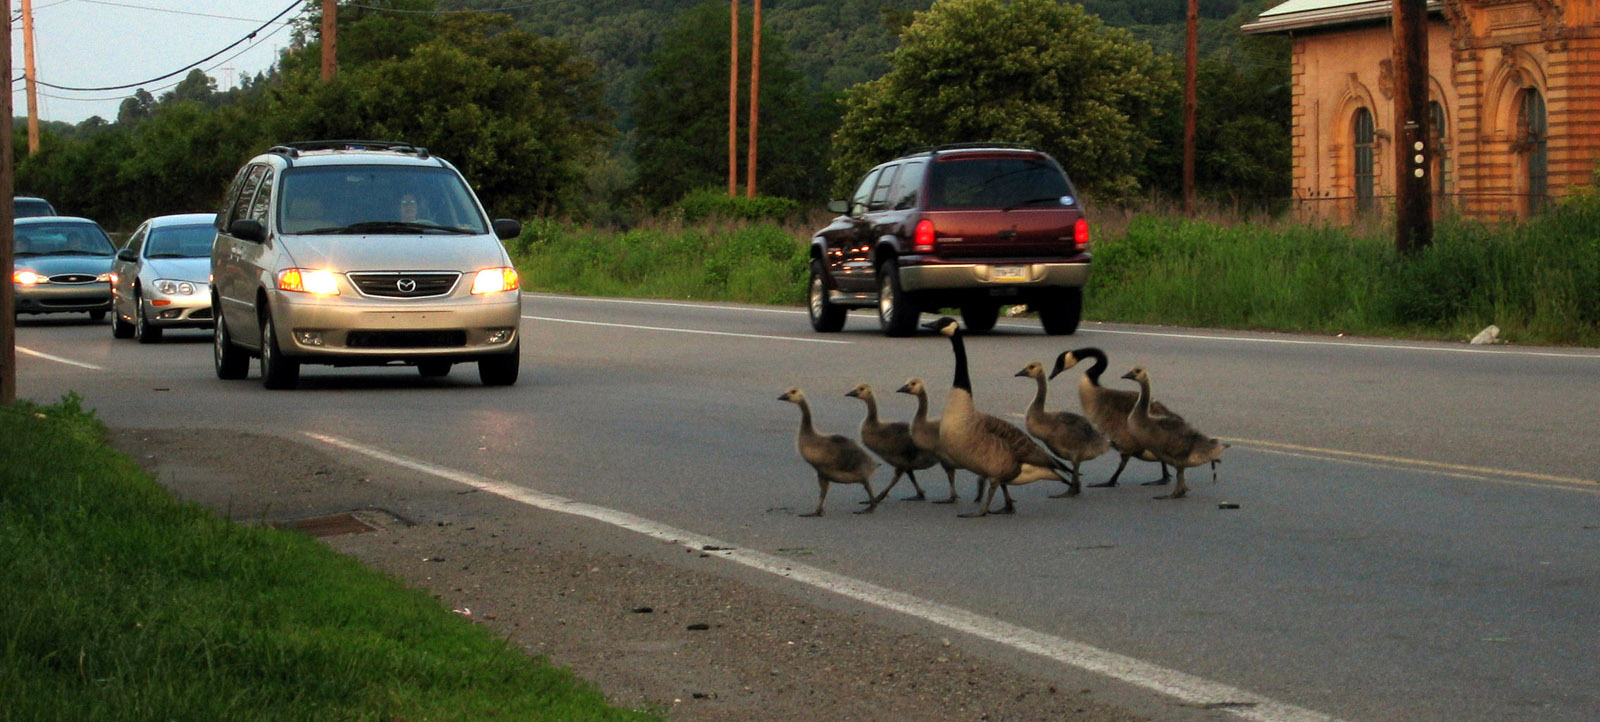 A family of geese crossing a busy street.